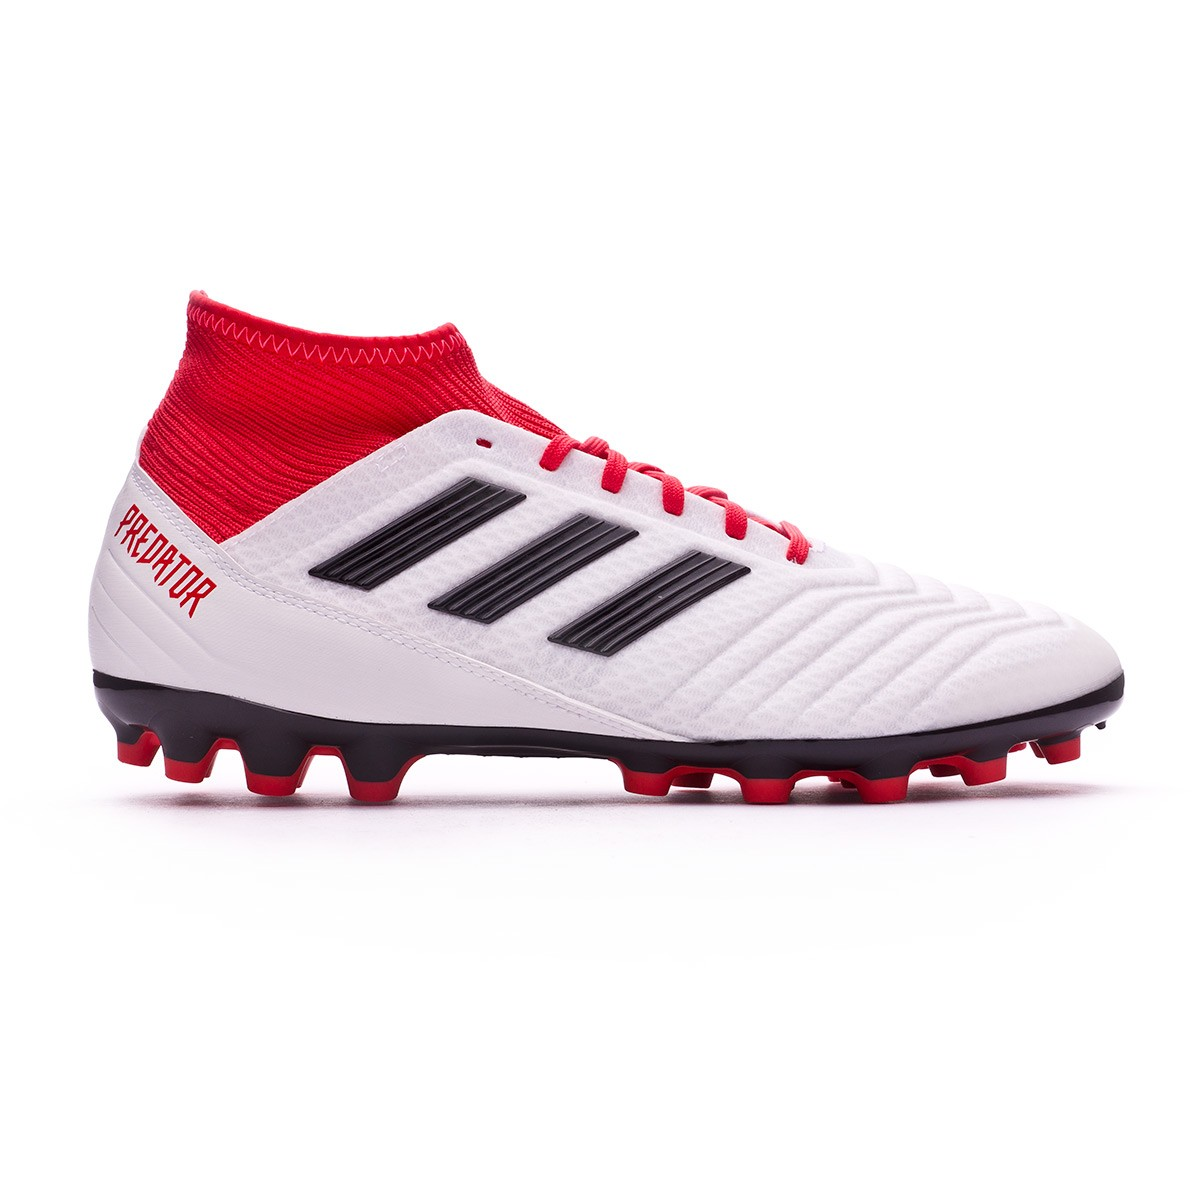 8603c7f63cd Football Boots adidas Predator 18.3 AG White-Core black-Real coral -  Football store Fútbol Emotion